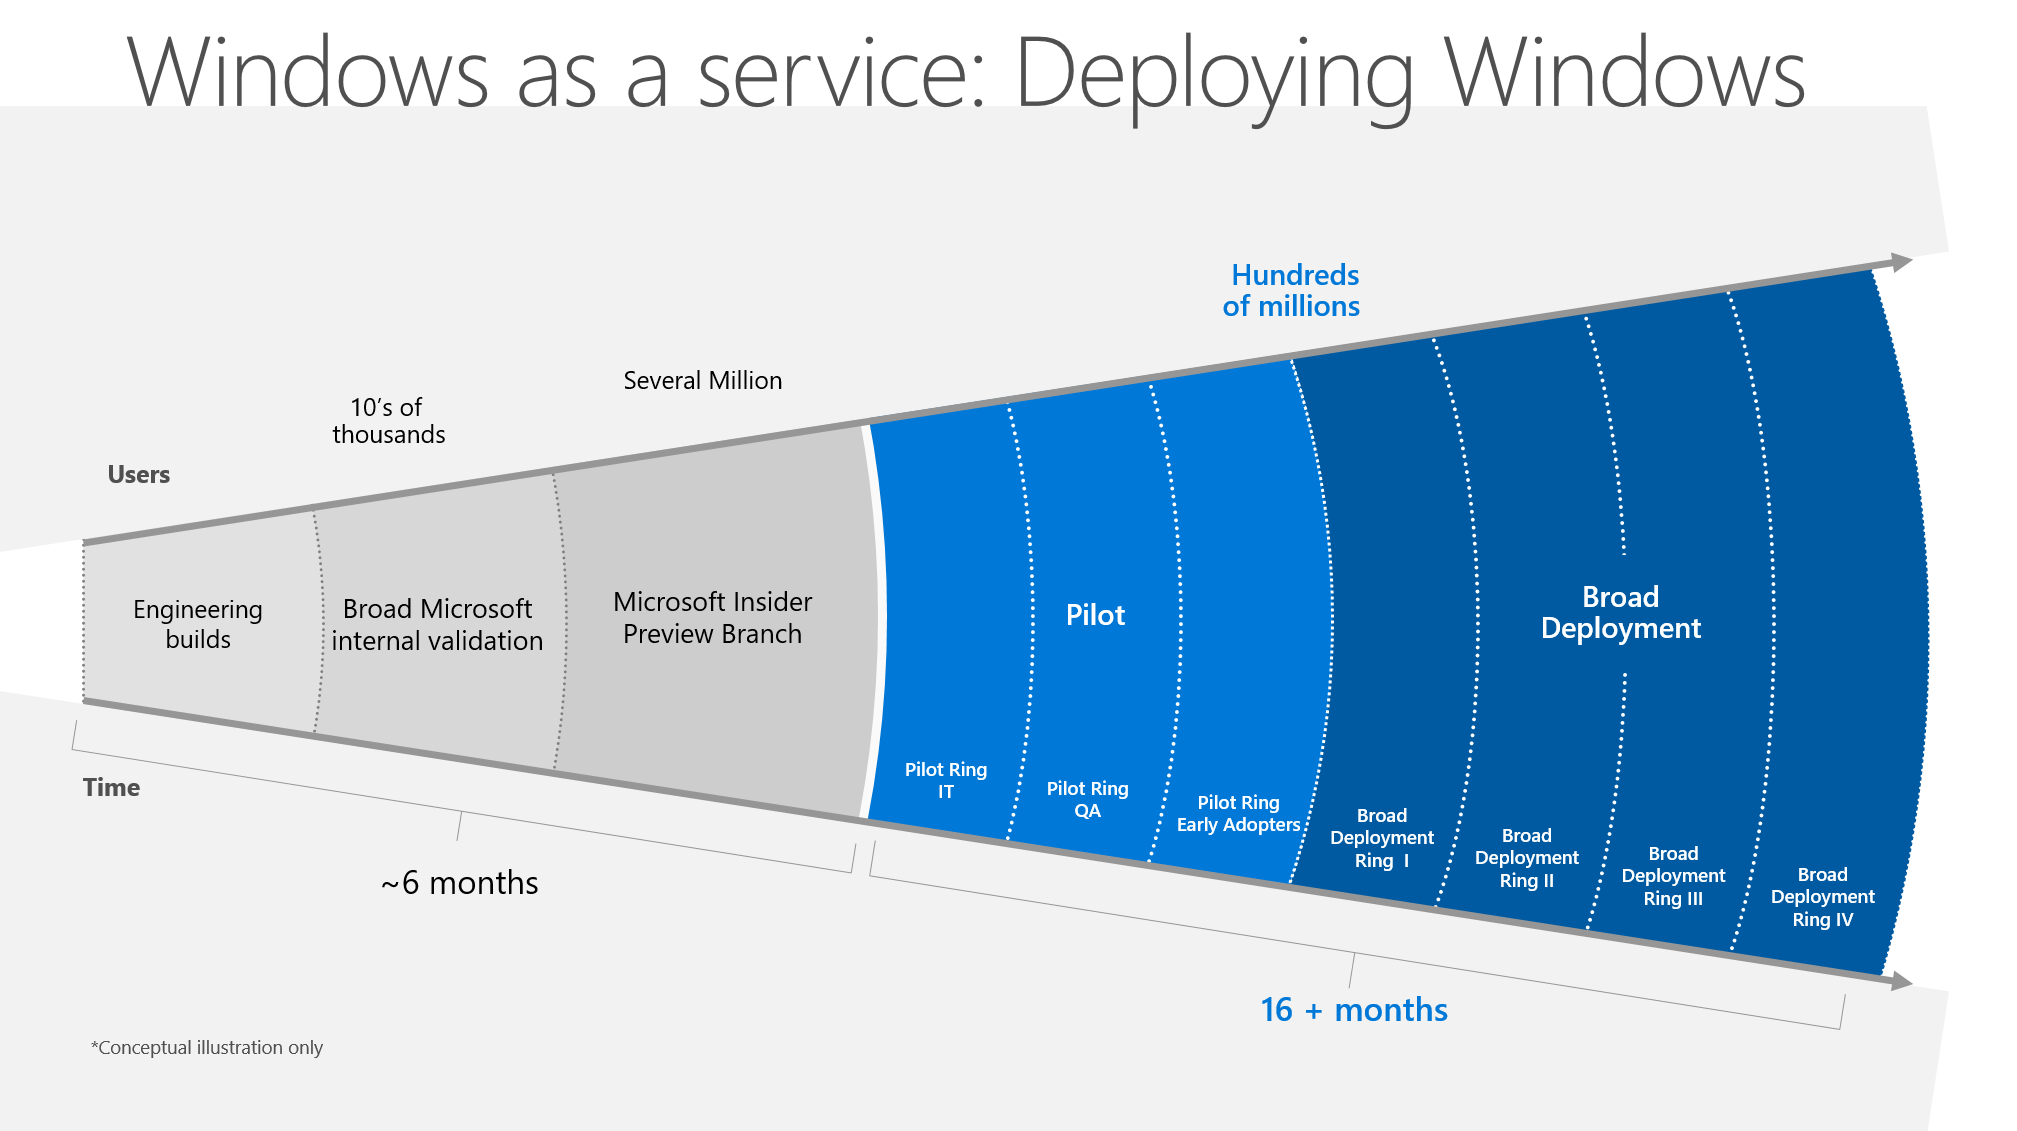 Windows-as-a-service-deployment-rings-image-1